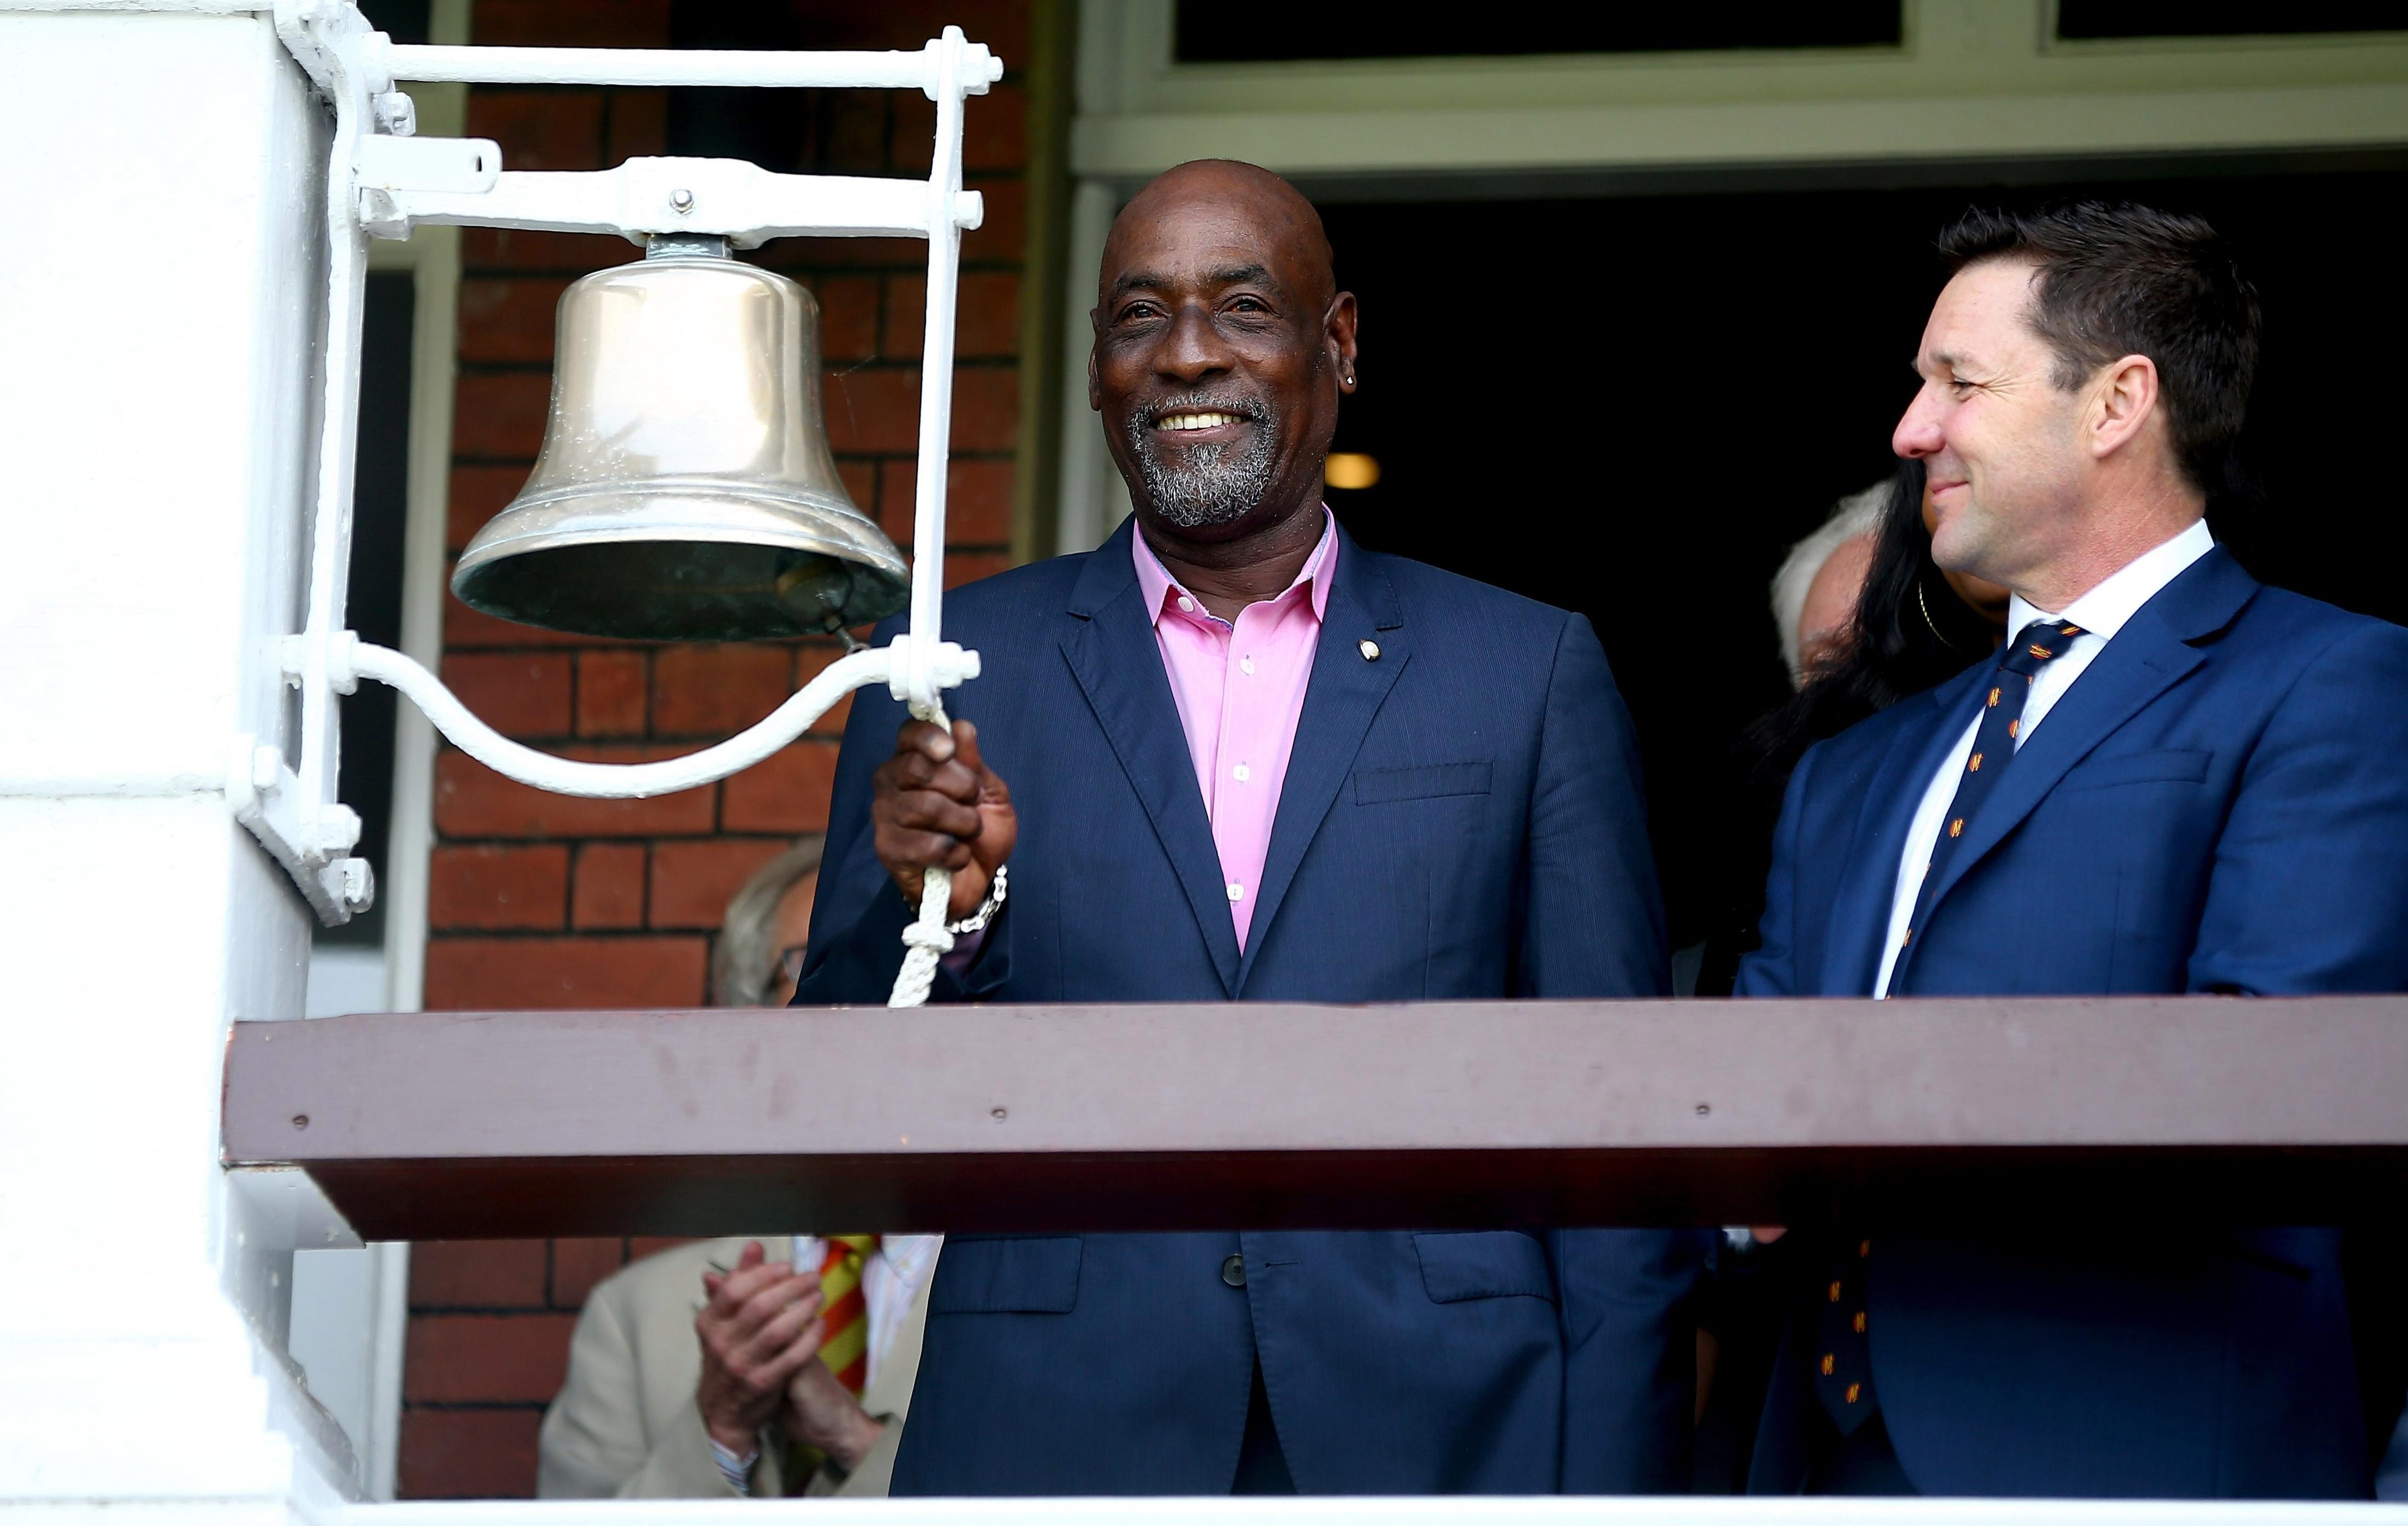 West Indies legend Sir Viv Richards rang the five-minute bell at Lord's